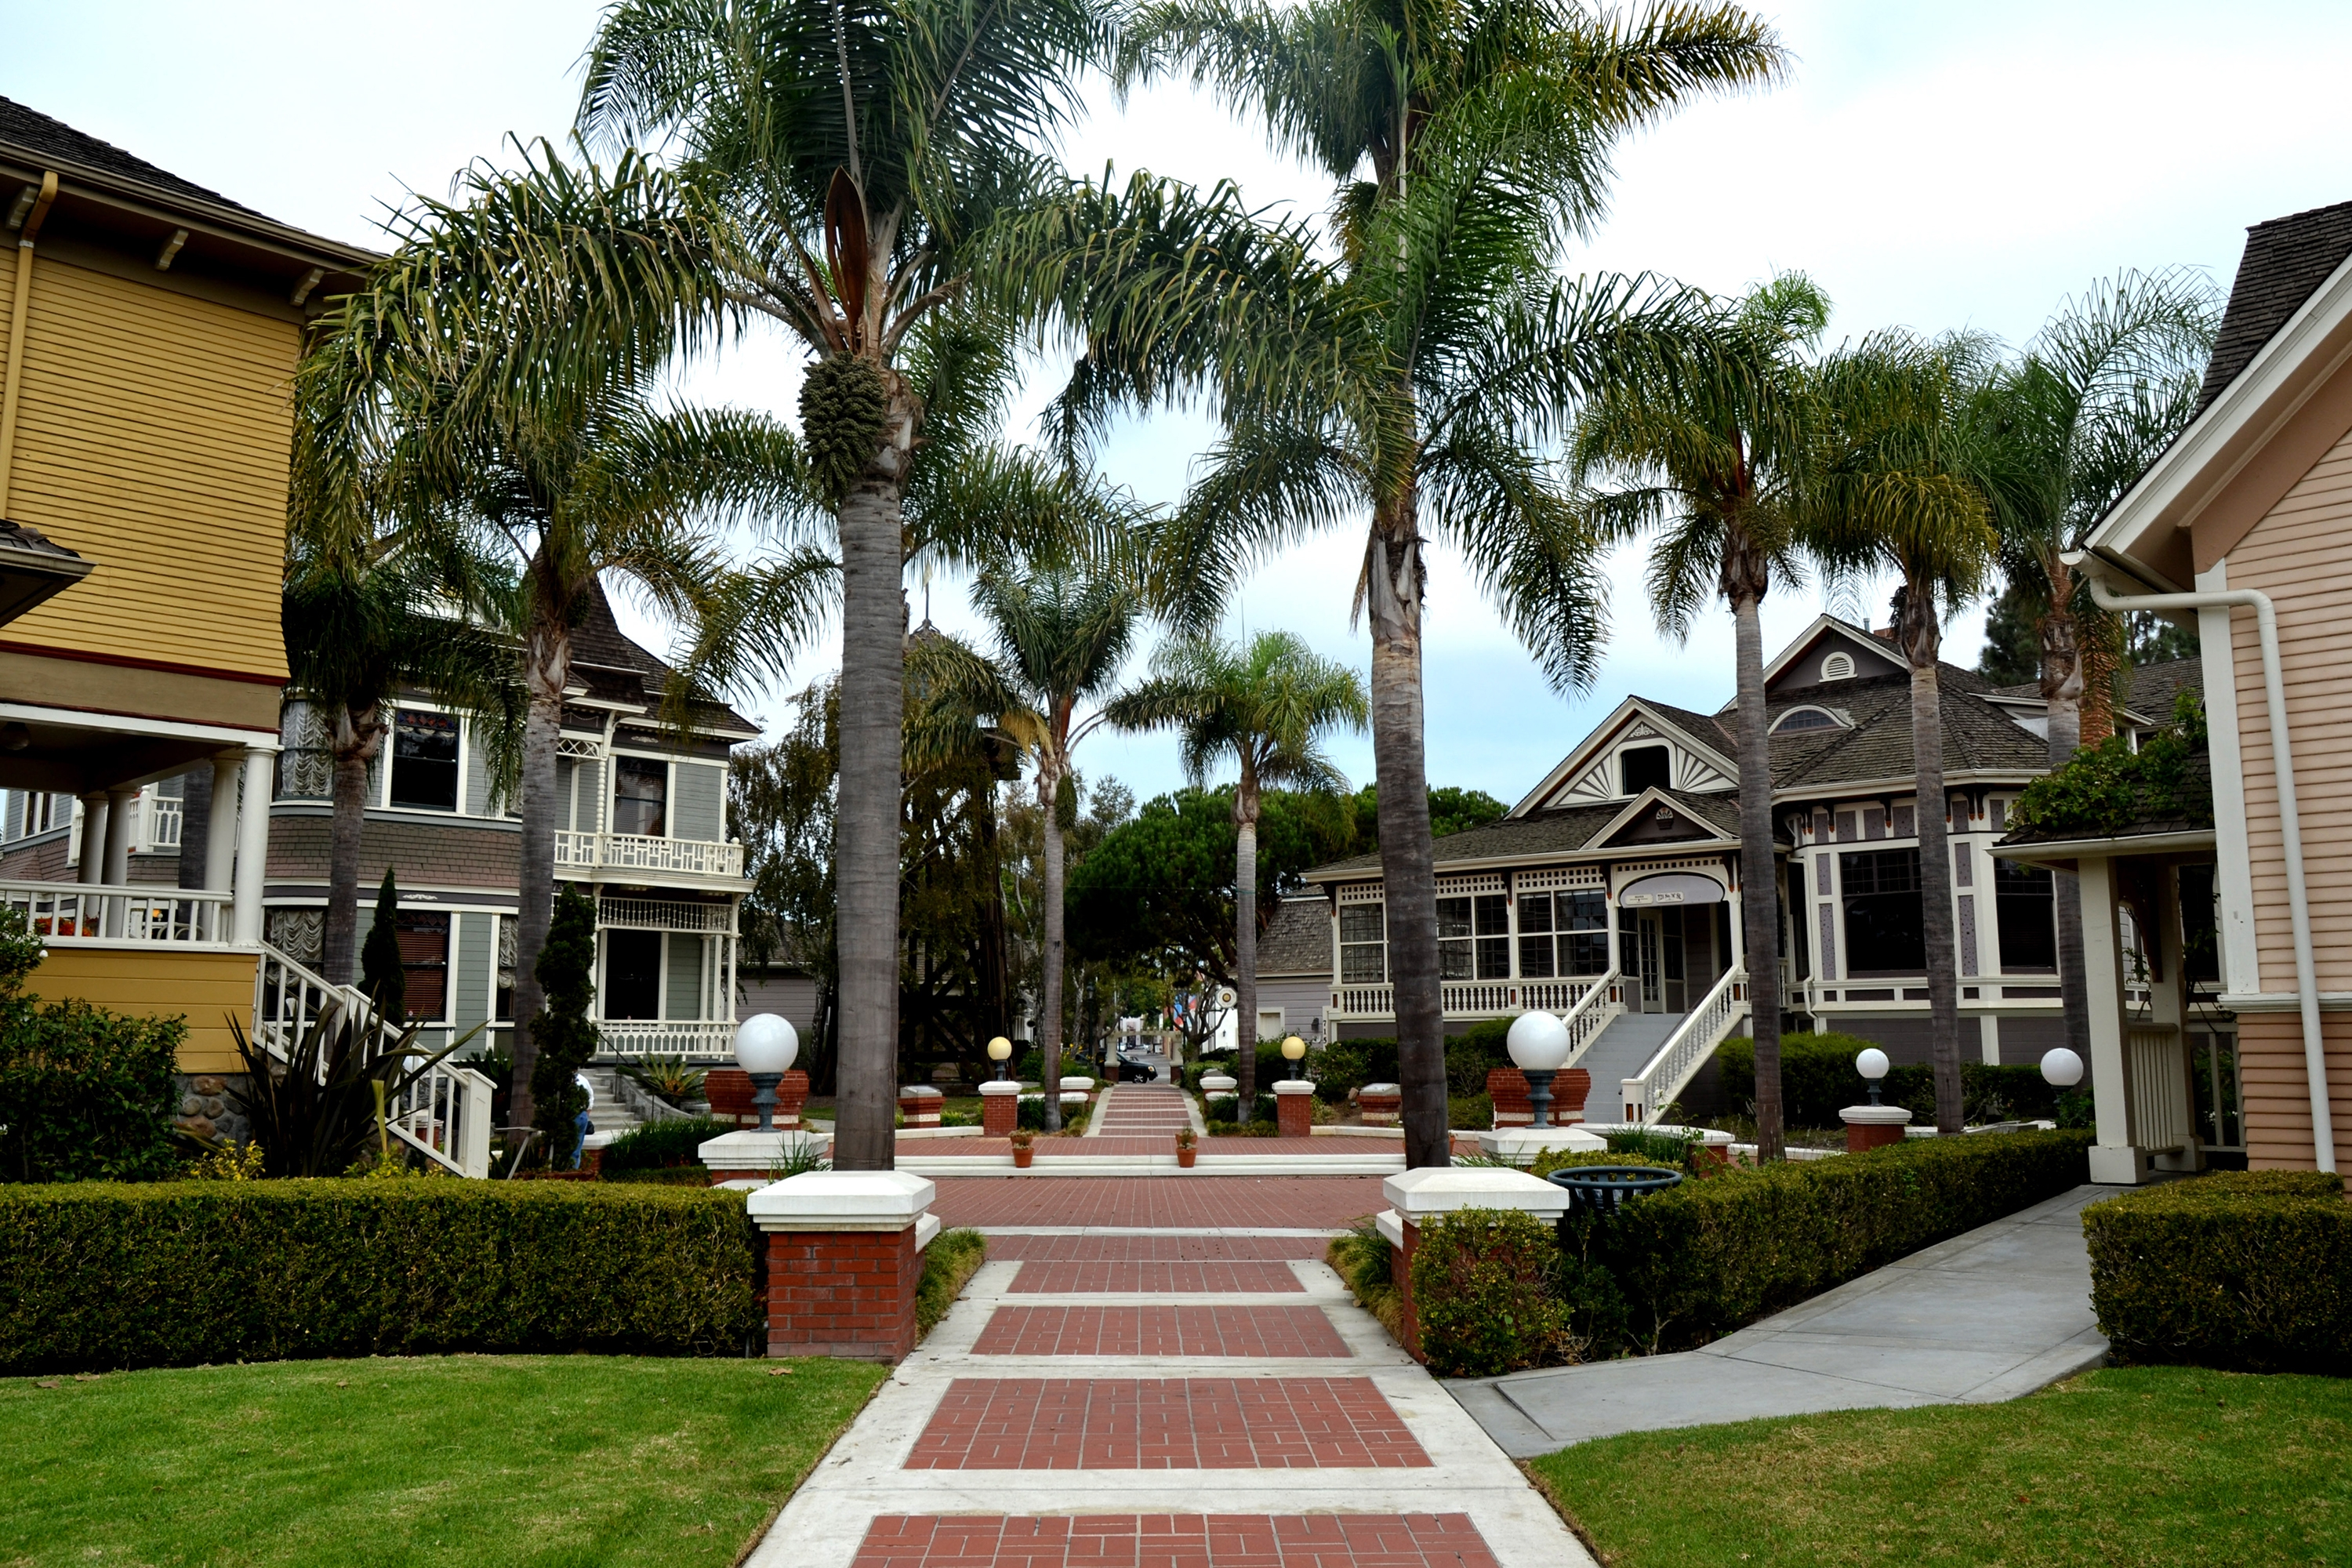 Fifteen historic structures have been relocated to Heritage Sqaure in downtown Oxnard, Calif. Most of them are historic farmhouses.